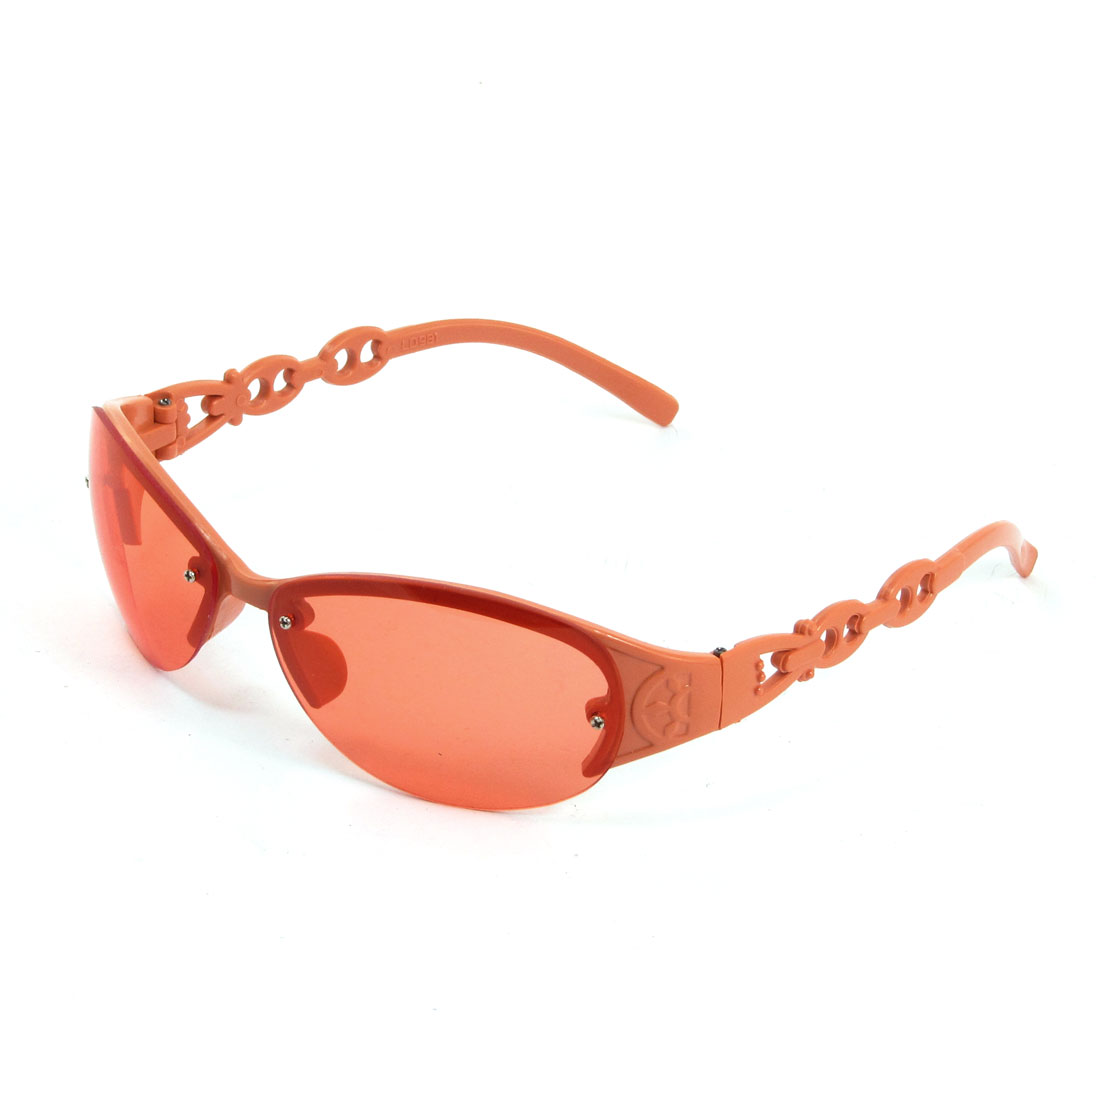 Orange Plastic Full Frame Outdoor Sunglasses Eyewear for Woman